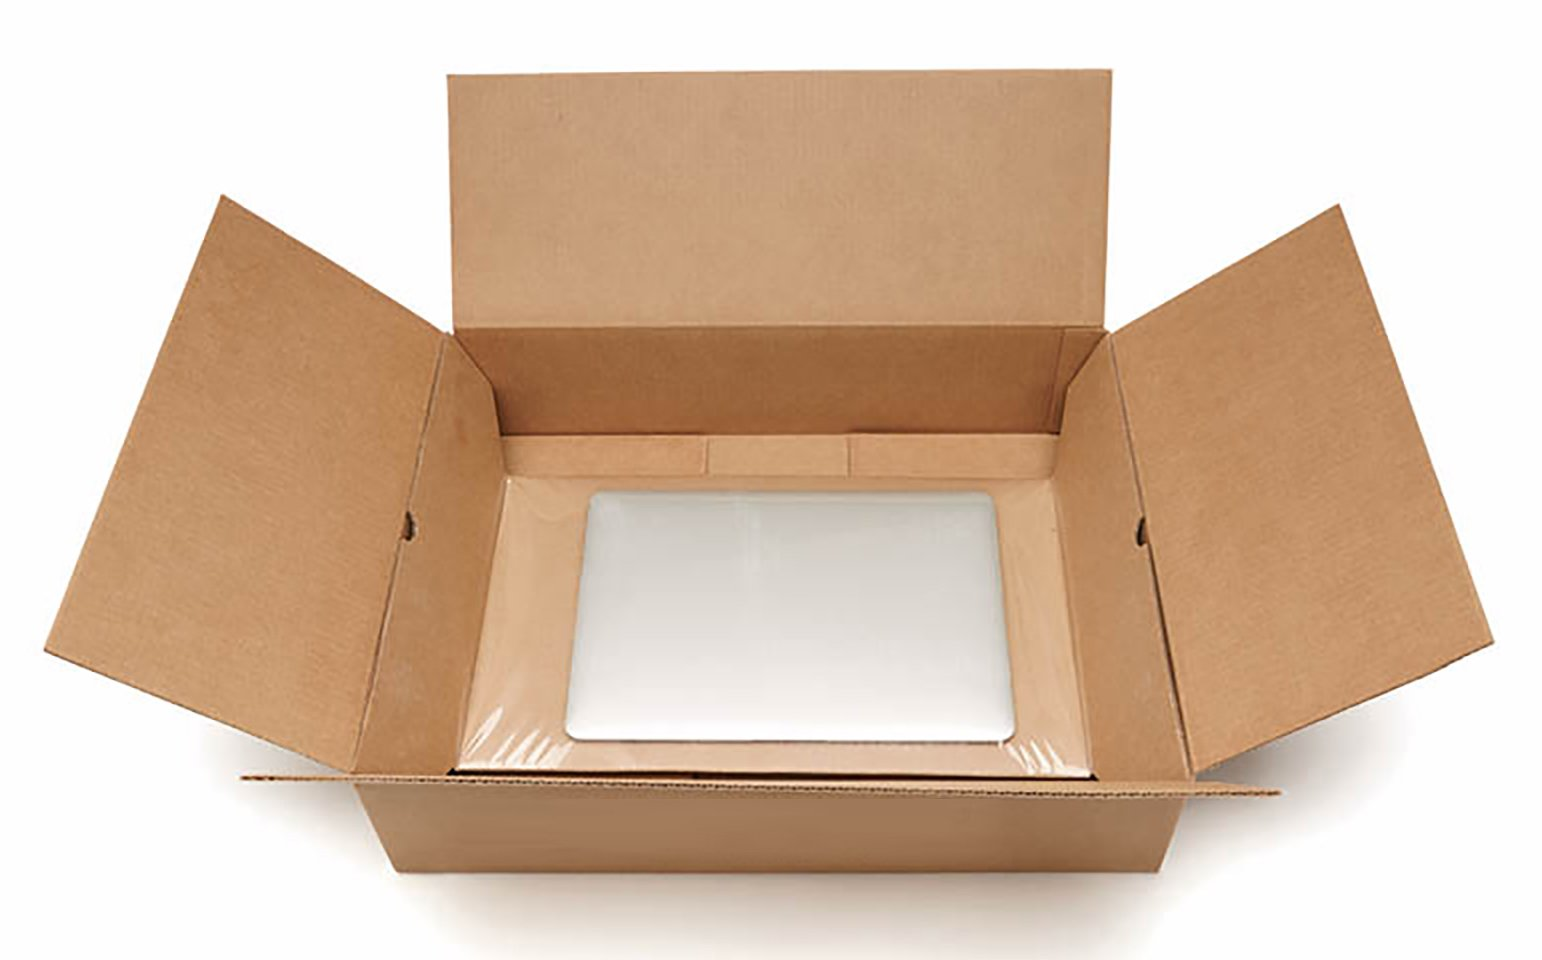 Korrvu® Laptop, Notebook or Tablet Shipping System / Mailer Box Size 18''x16''x4'' - Fits Most Laptop Screen Sizes